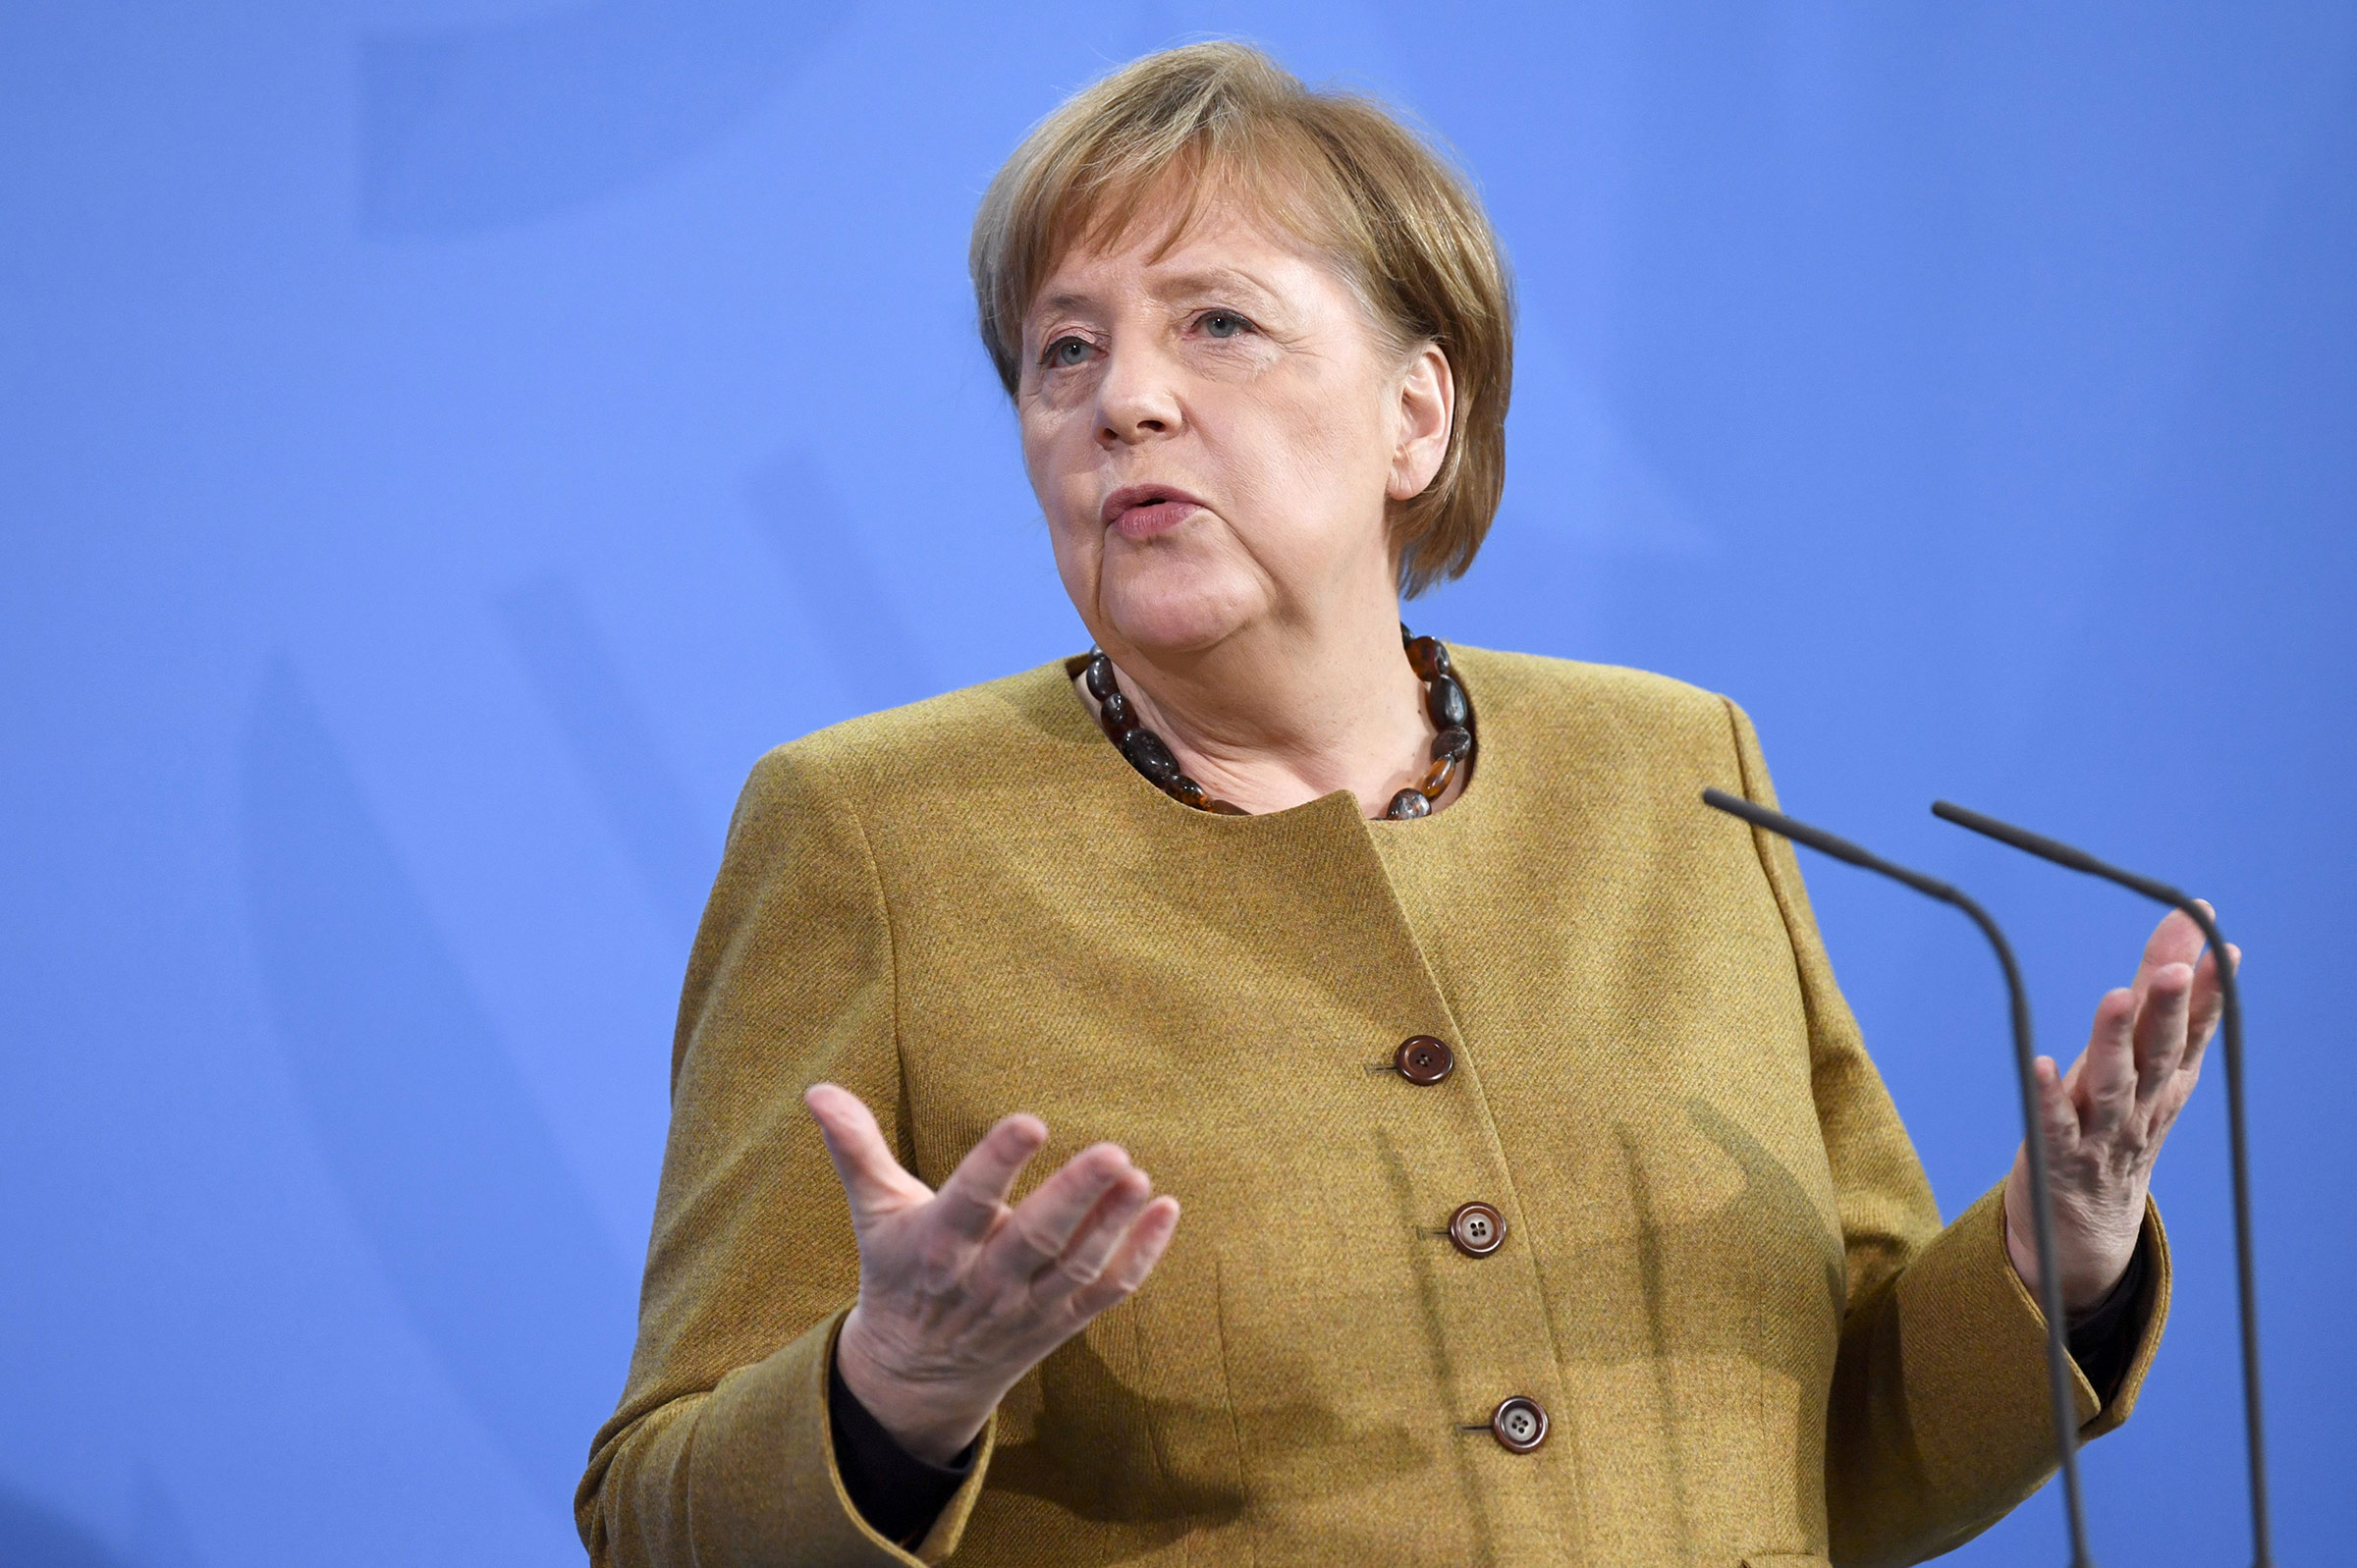 German Chancellor Angela Merkel speaks during a press conference in Berlin, on February 19.